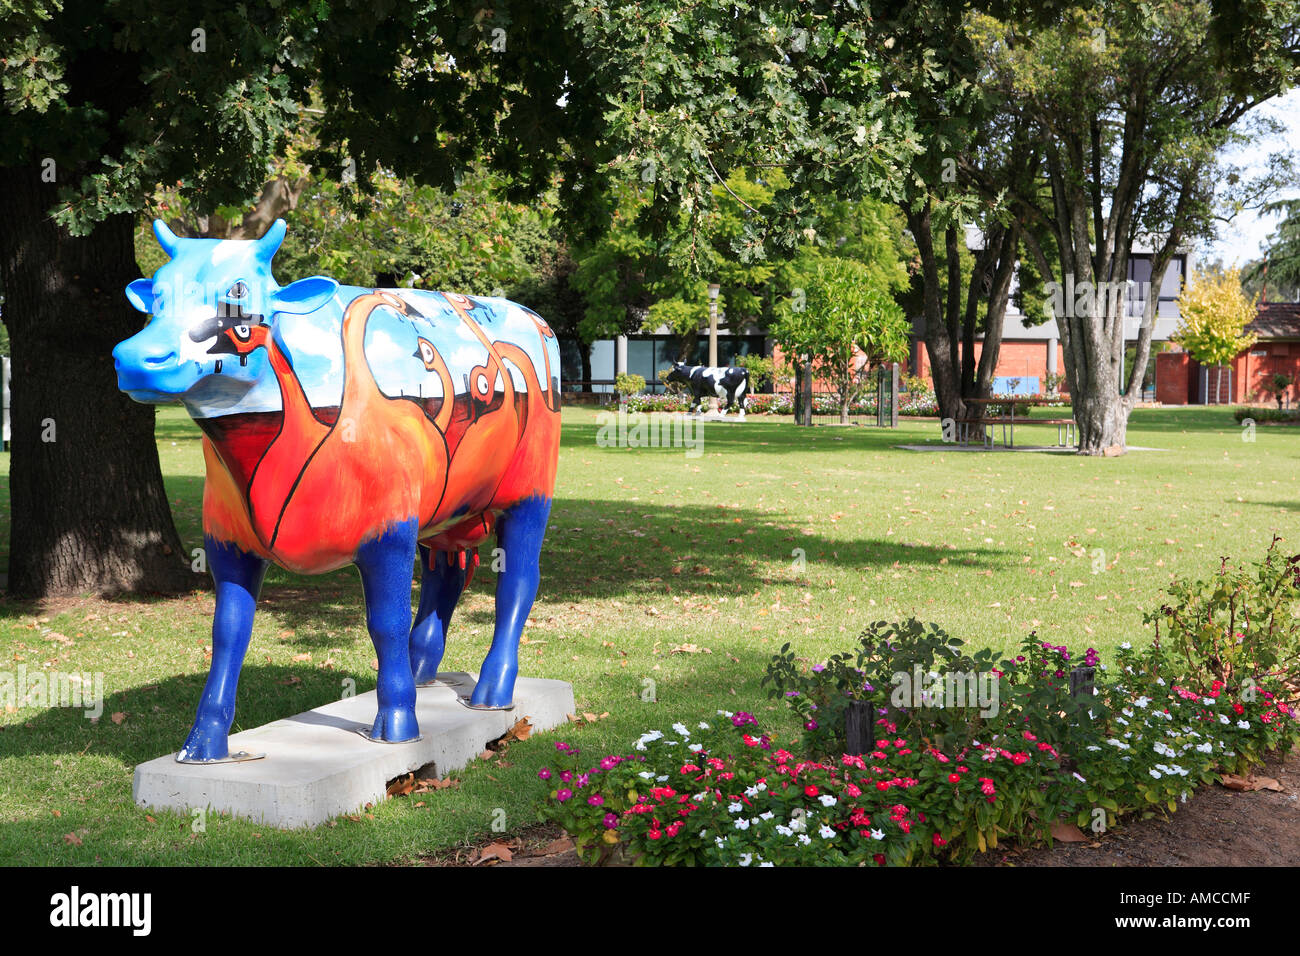 Scenic Fibreglass Sculpture Stock Photos  Fibreglass Sculpture Stock  With Entrancing Interactive Public Art Exhibition Of Painted Fibreglass Cow In Front Of  Regional Art Gallery Shepparton With Alluring Master Gardener Plant Sale Also Holiday Inn Madison Square Gardens In Addition Solar Lights Uk Garden And Busaba Covent Garden As Well As Garden Centres Fareham Additionally Diesel Covent Garden From Alamycom With   Entrancing Fibreglass Sculpture Stock Photos  Fibreglass Sculpture Stock  With Alluring Interactive Public Art Exhibition Of Painted Fibreglass Cow In Front Of  Regional Art Gallery Shepparton And Scenic Master Gardener Plant Sale Also Holiday Inn Madison Square Gardens In Addition Solar Lights Uk Garden From Alamycom